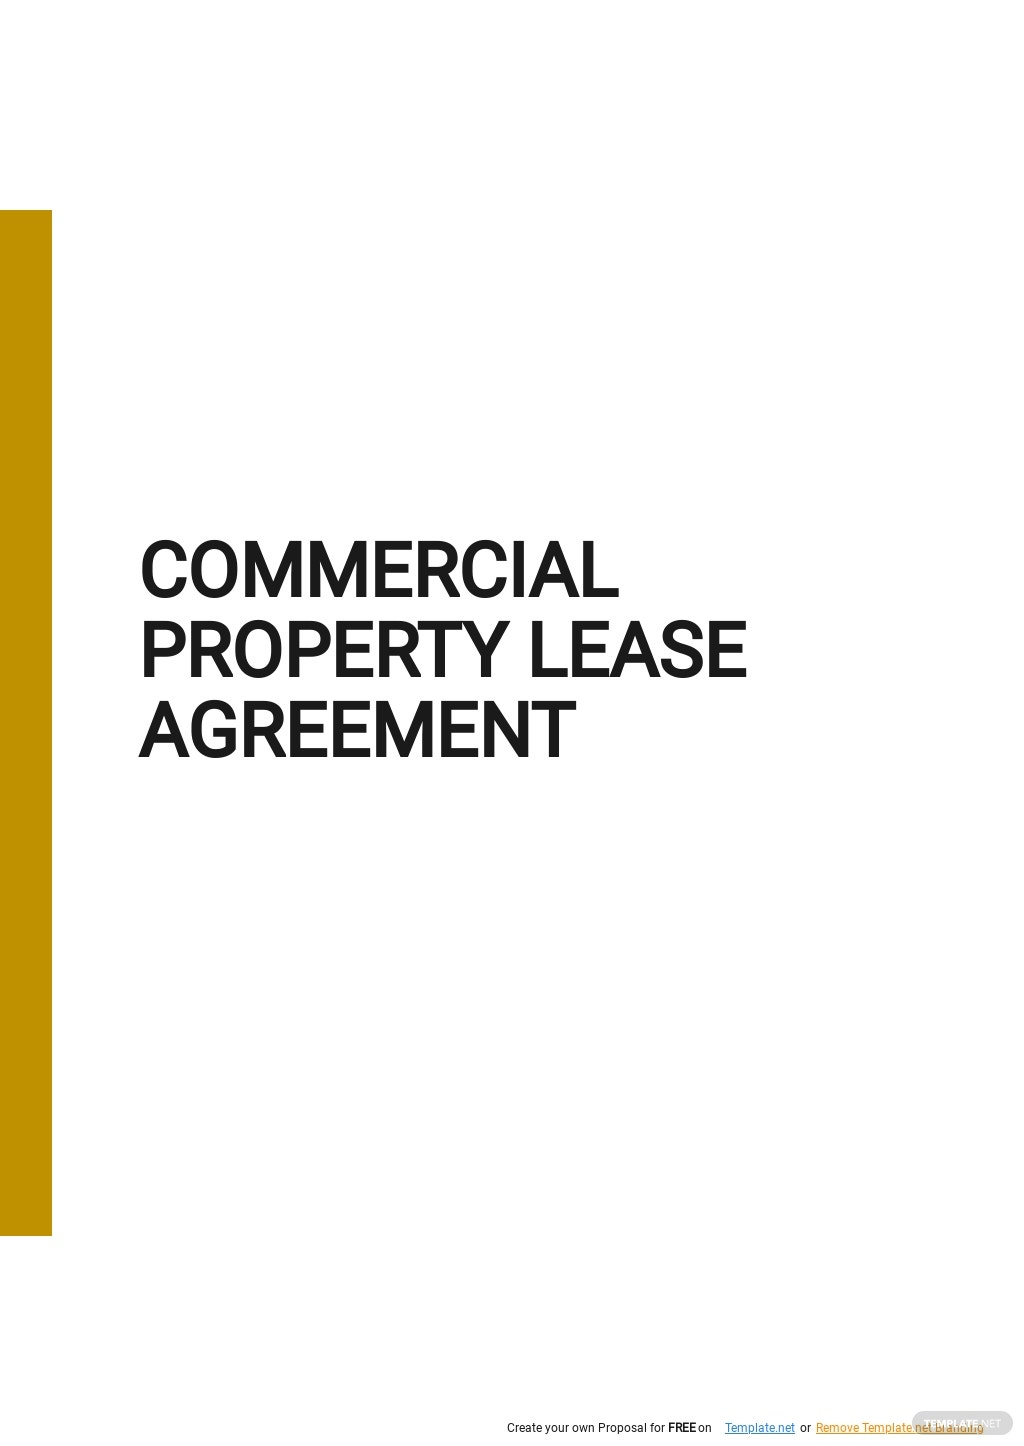 Commercial Property Lease Agreement Template.jpe